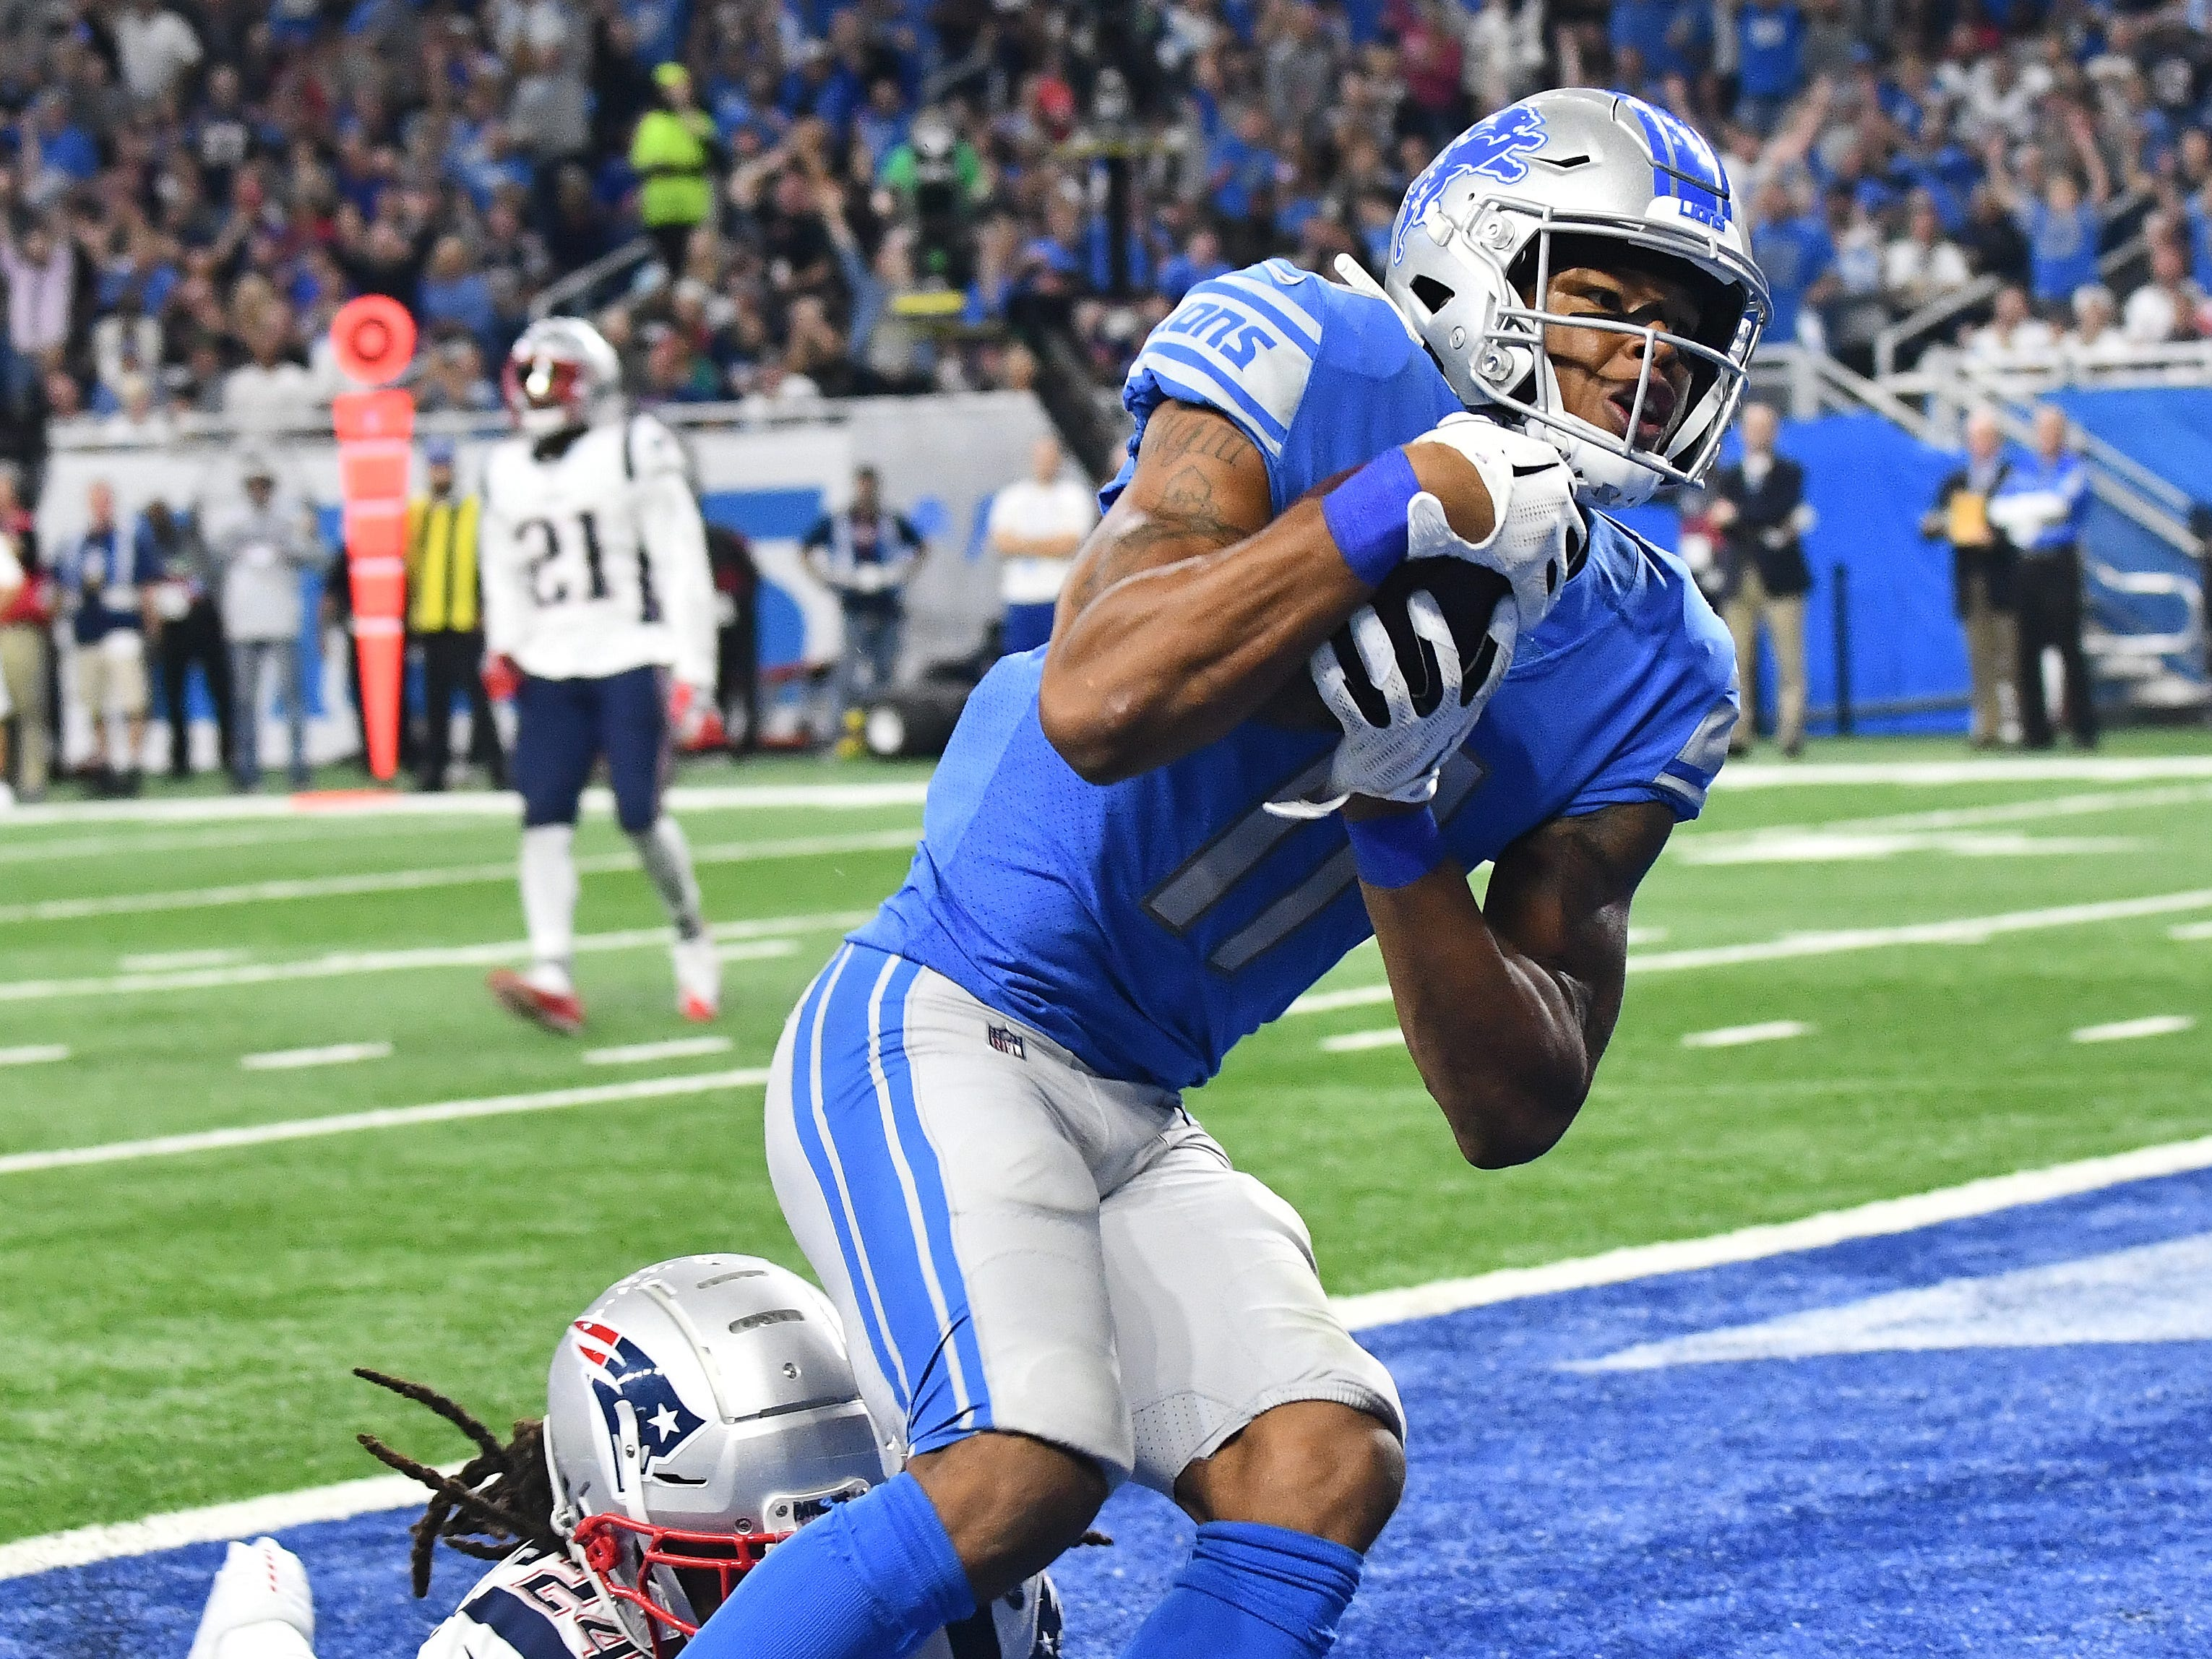 Lions wide receiver Marvin Jones Jr. readies for a touchdown reception in front of Patriots' Stephon Gilmore in the 3rd quarter.